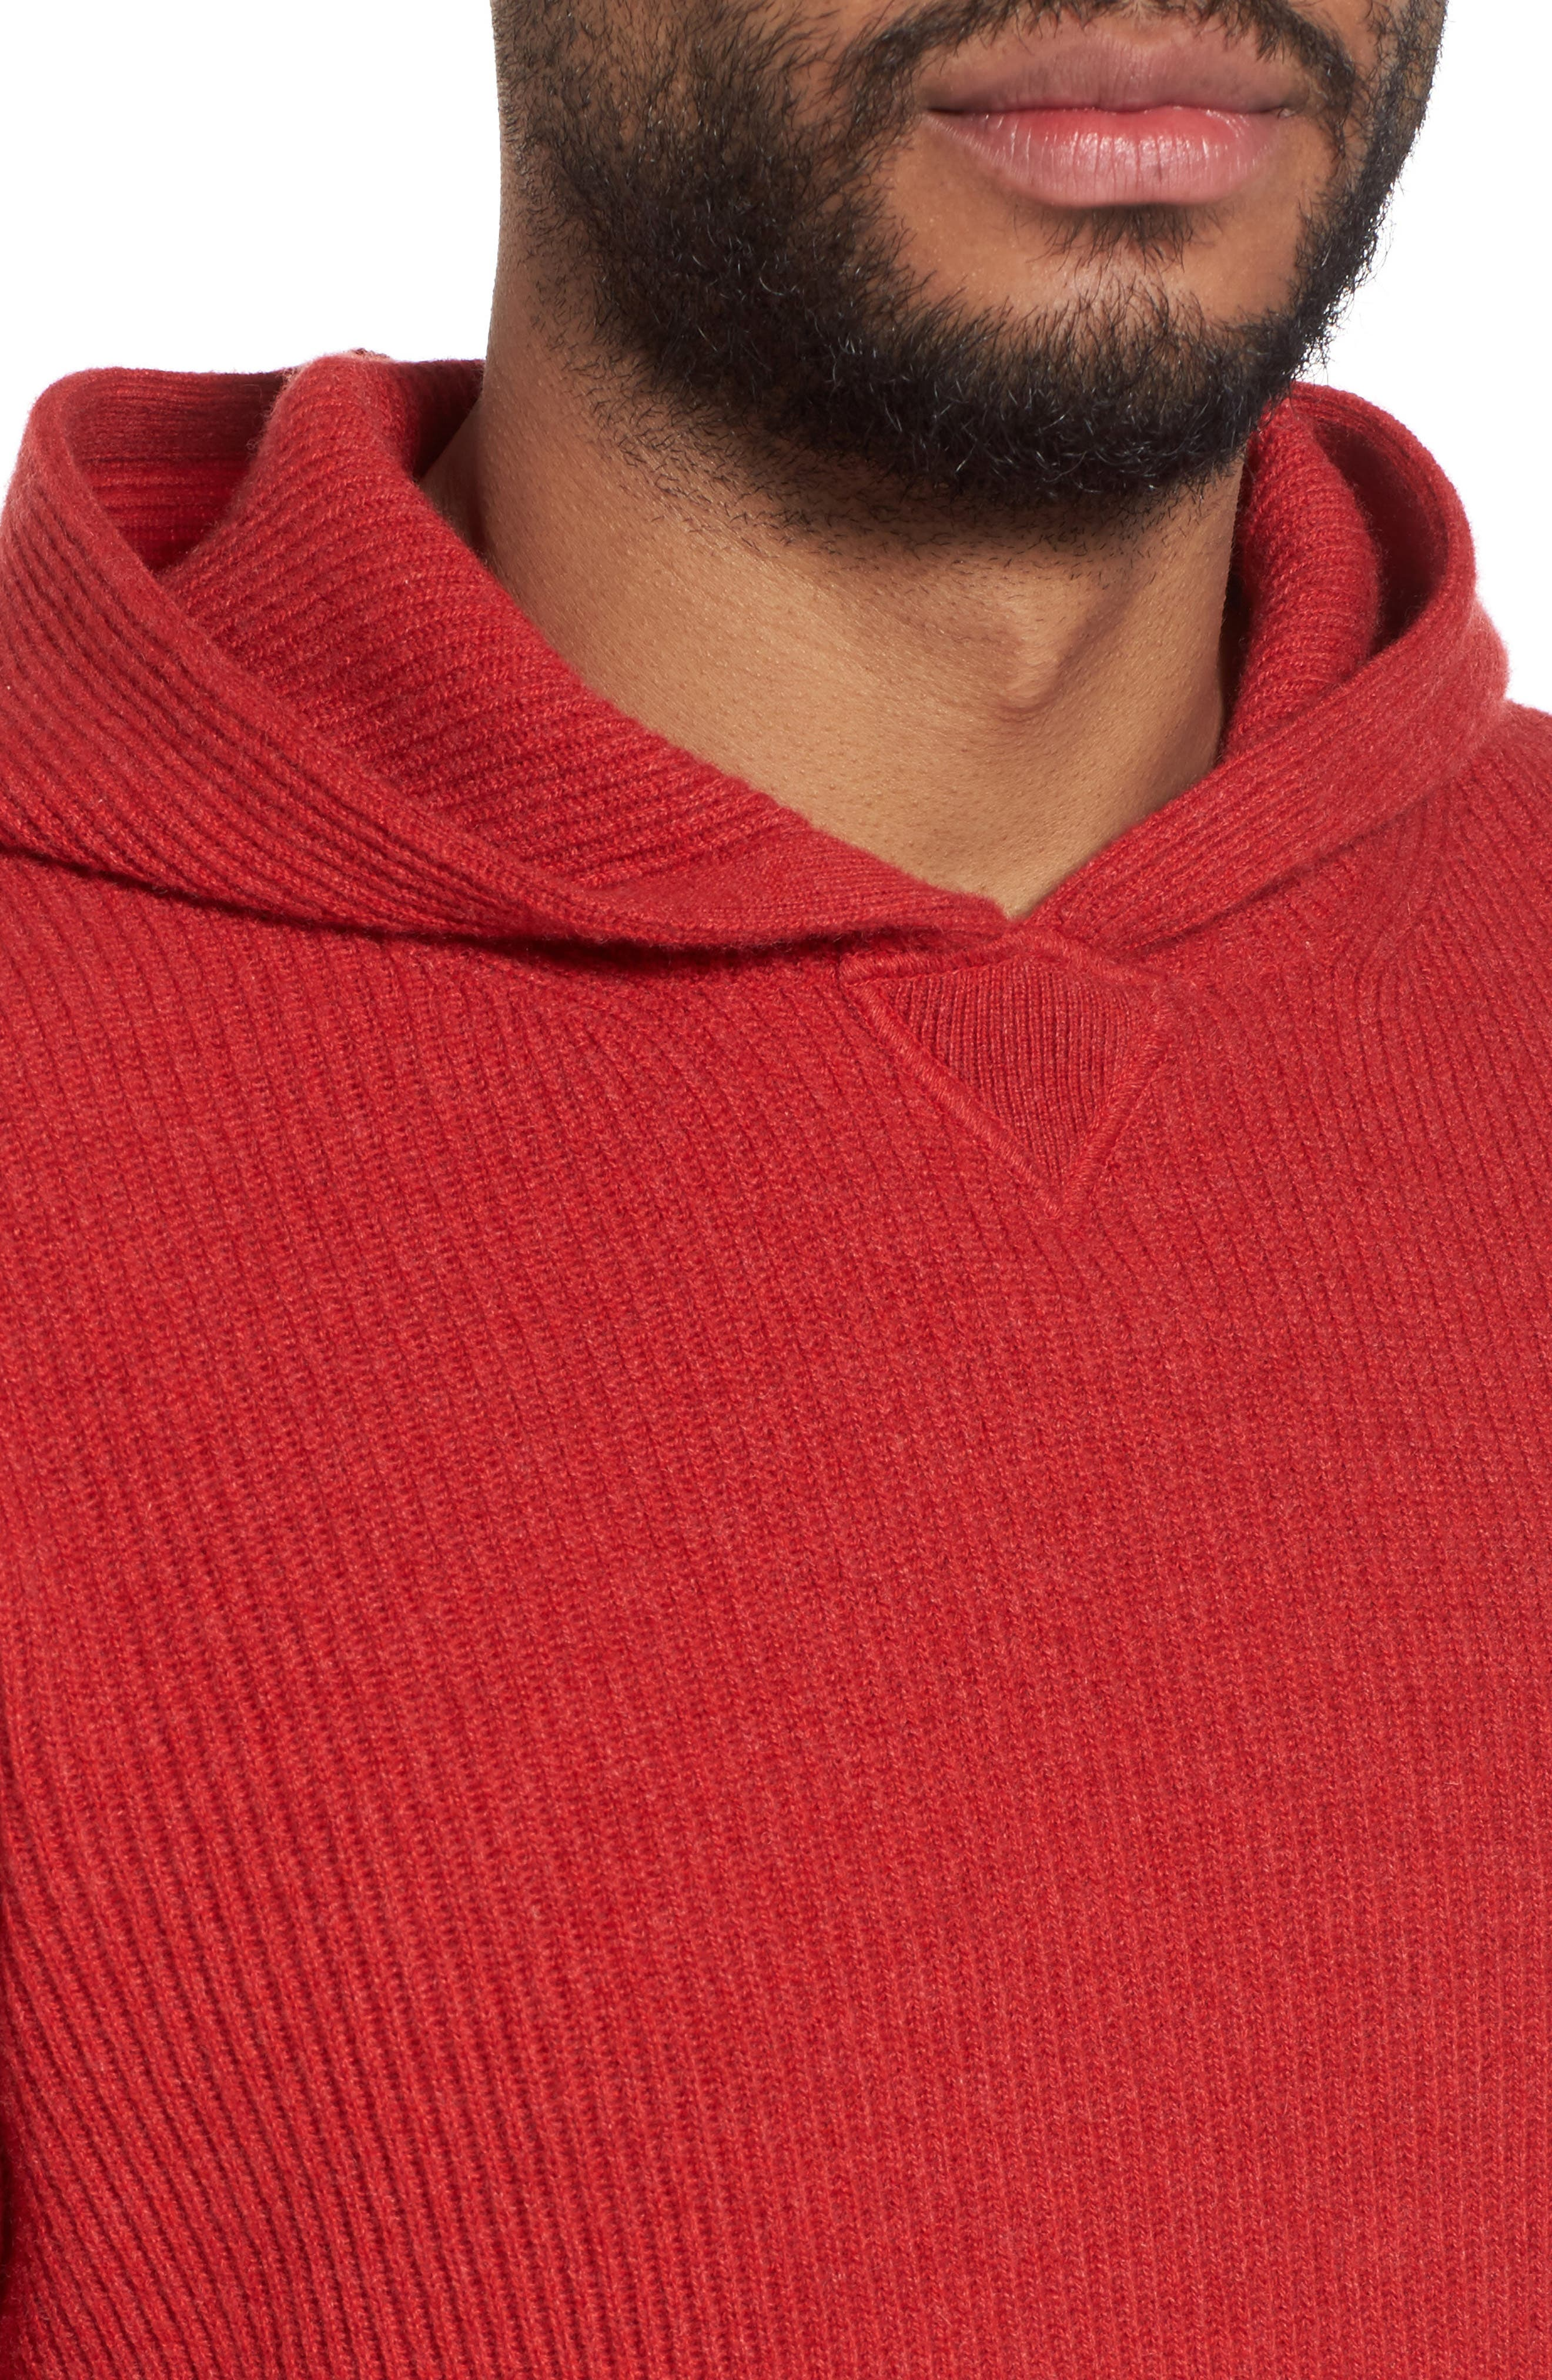 Cashmere Hoodie,                             Alternate thumbnail 4, color,                             Red